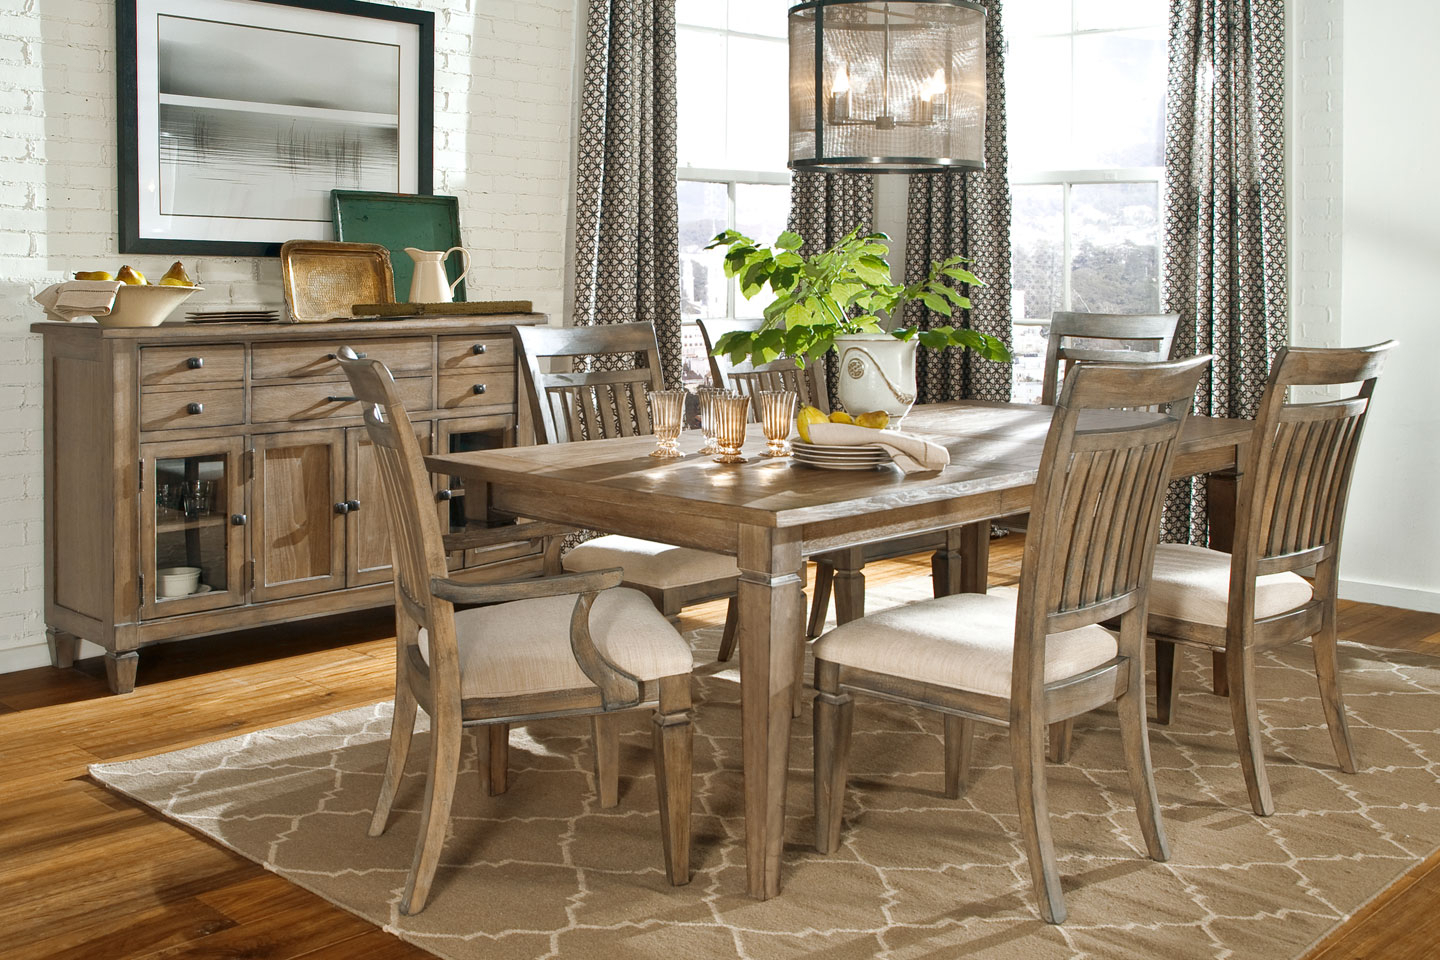 Beautiful Rustic Kitchen Tables To Inspire You — Office Pdx Inside Most Current Large Rustic Look Dining Tables (View 15 of 30)